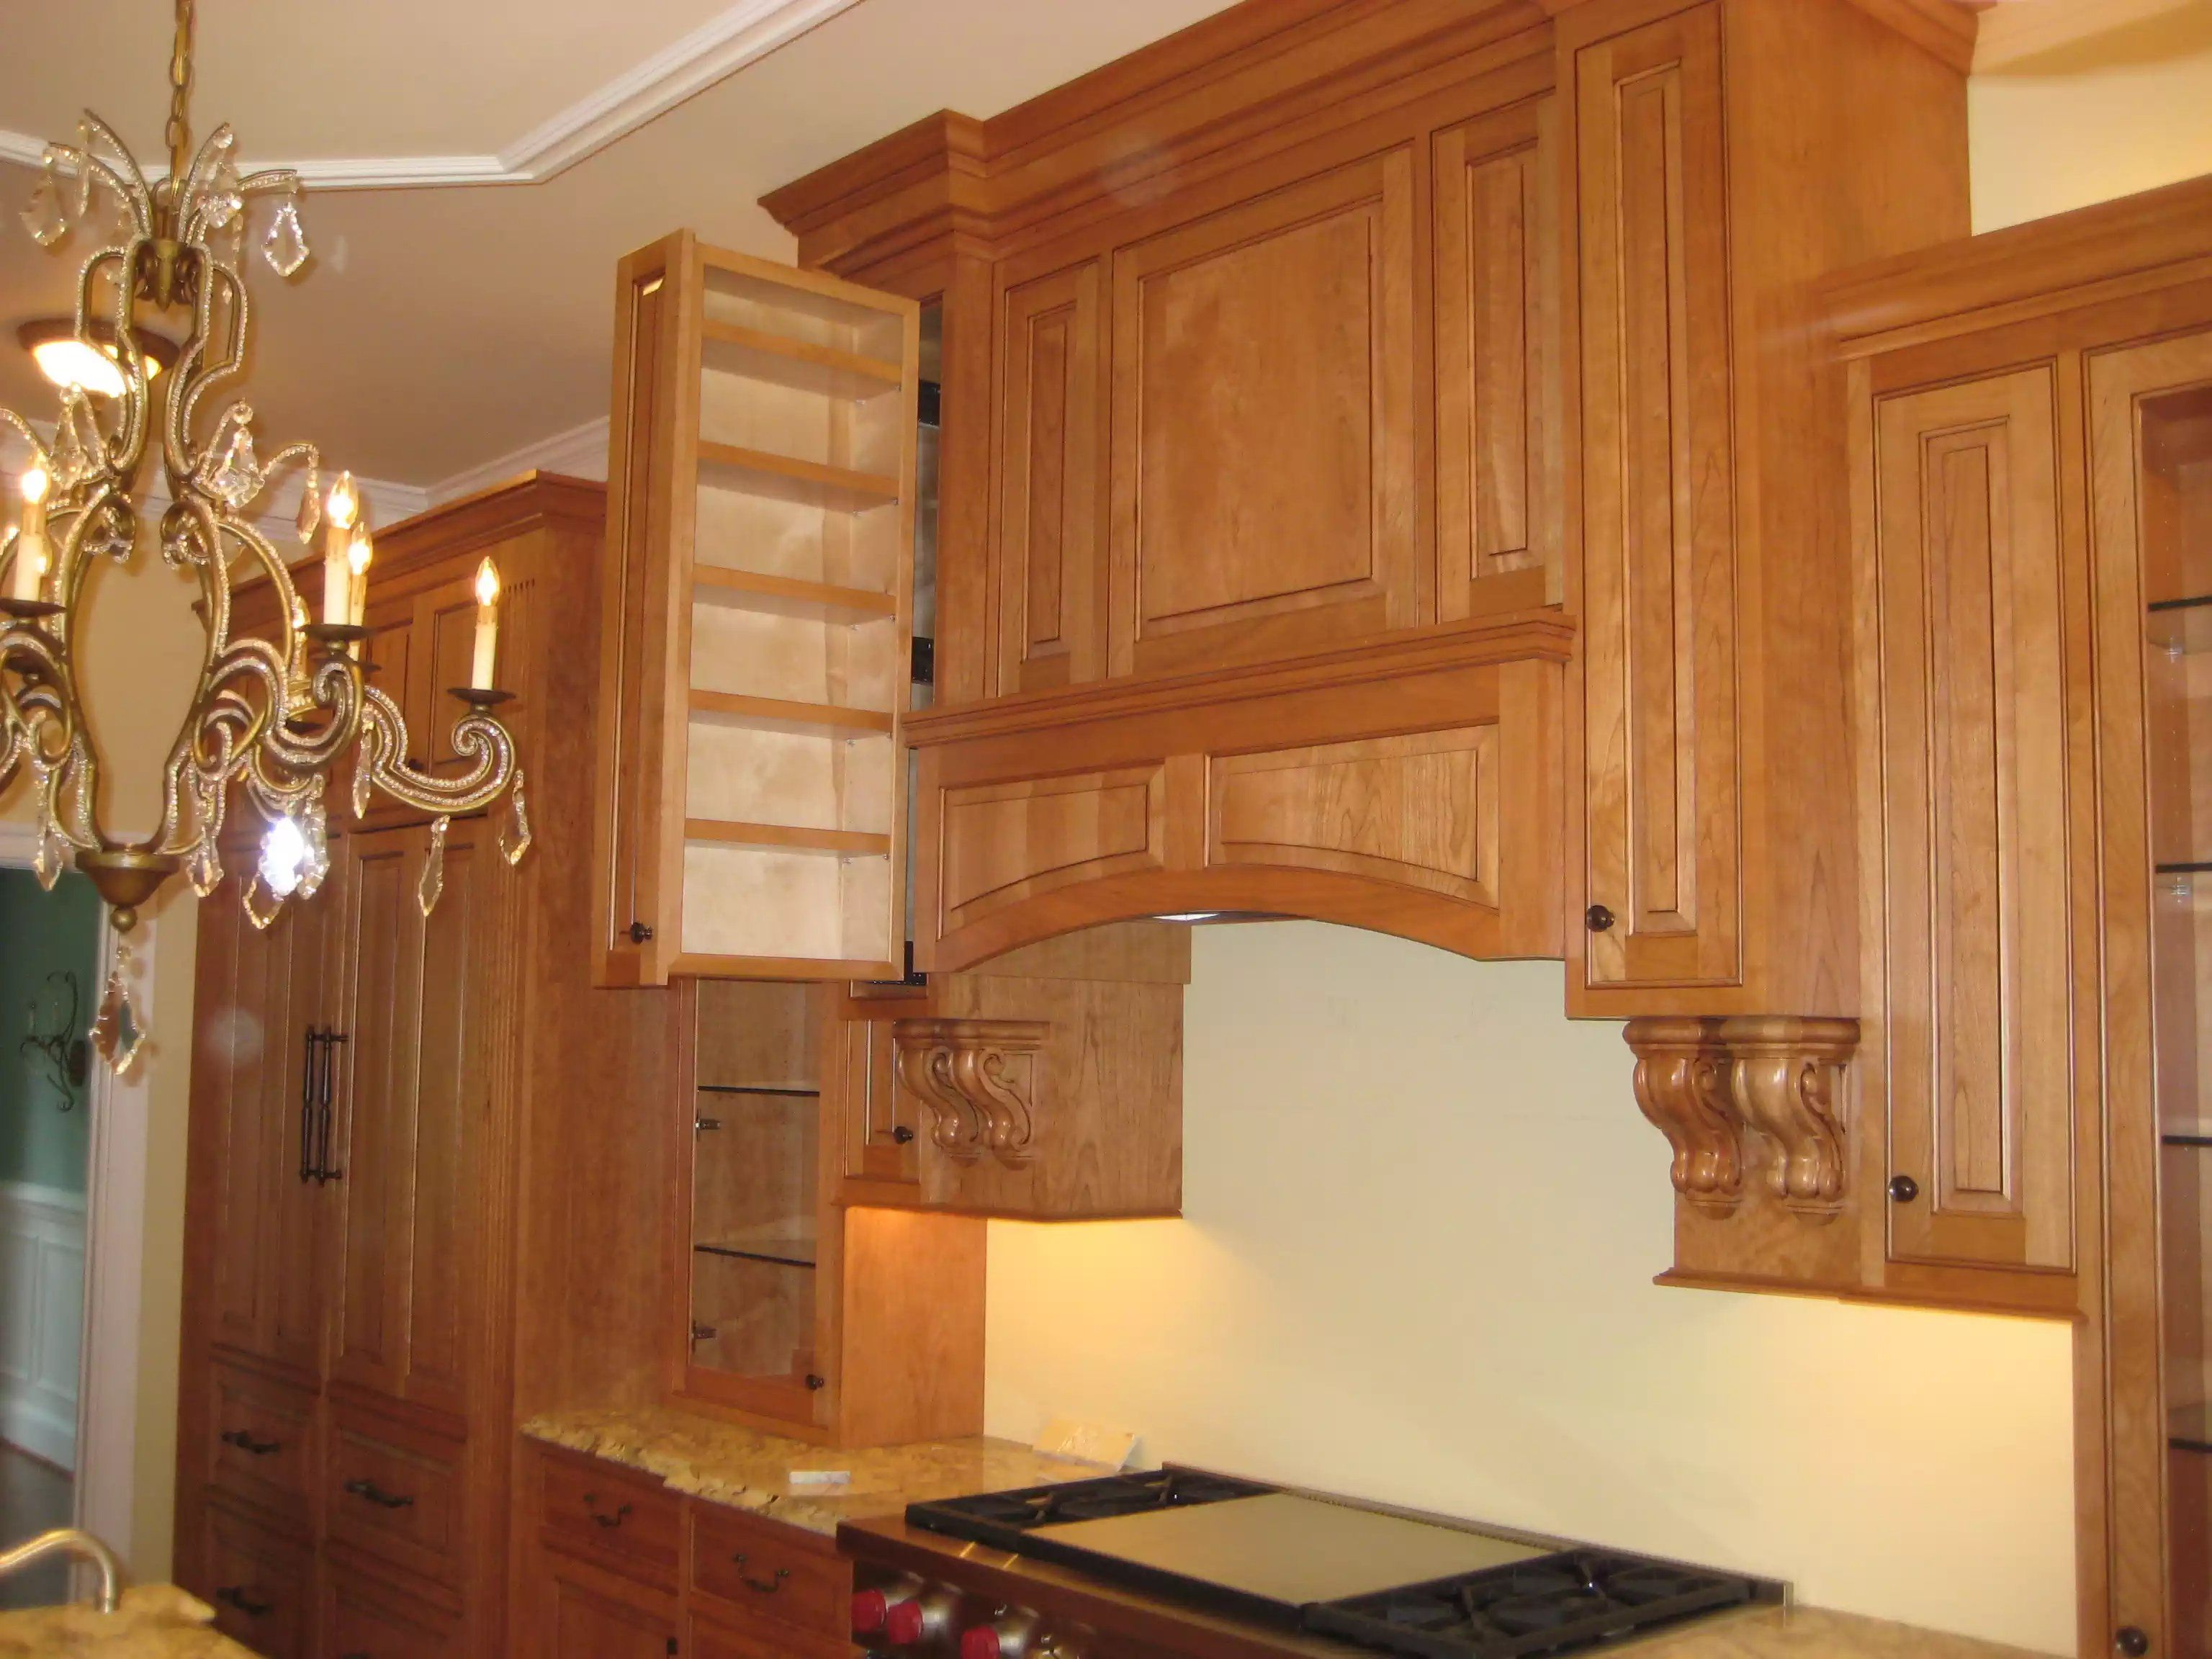 Custom Kitchen: Pull Out Spice Rack By Prestige Cabinets